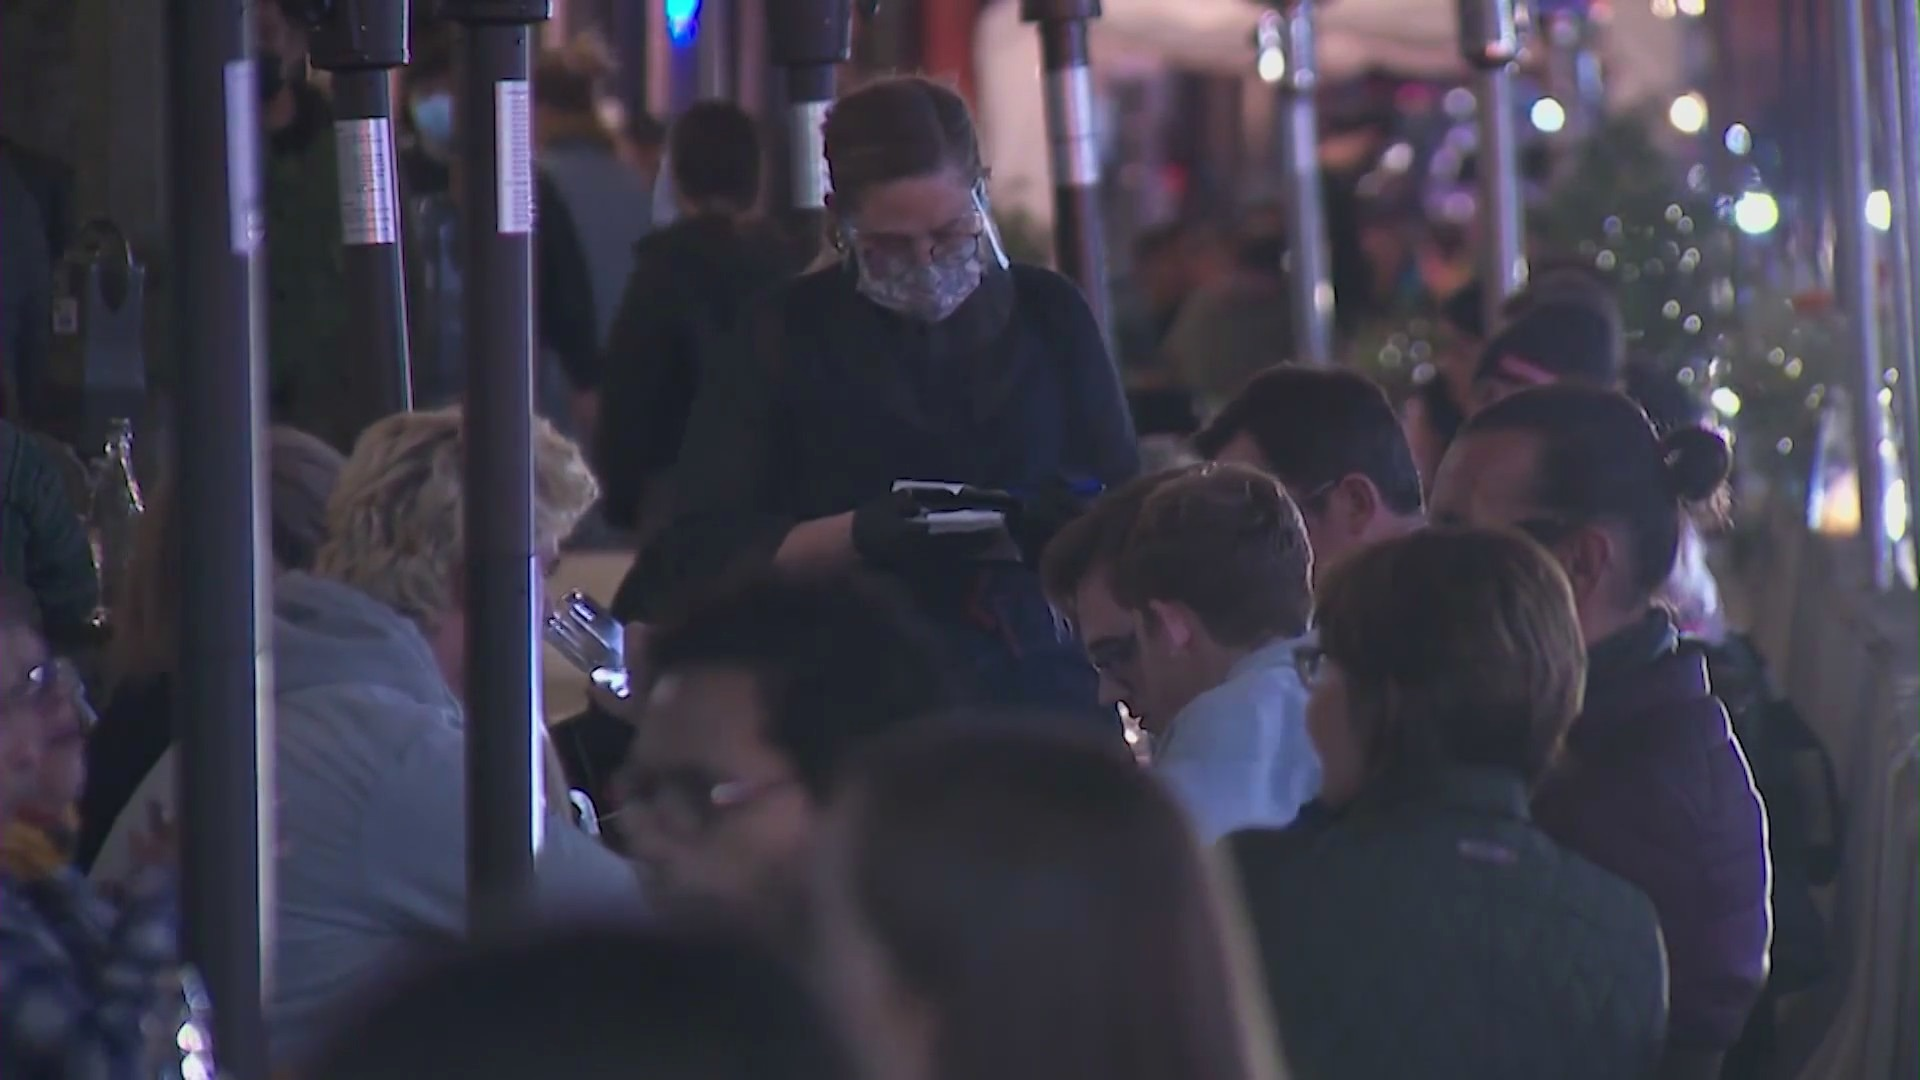 People dine out in Pasadena on Dec. 1, 2020. (KTLA)